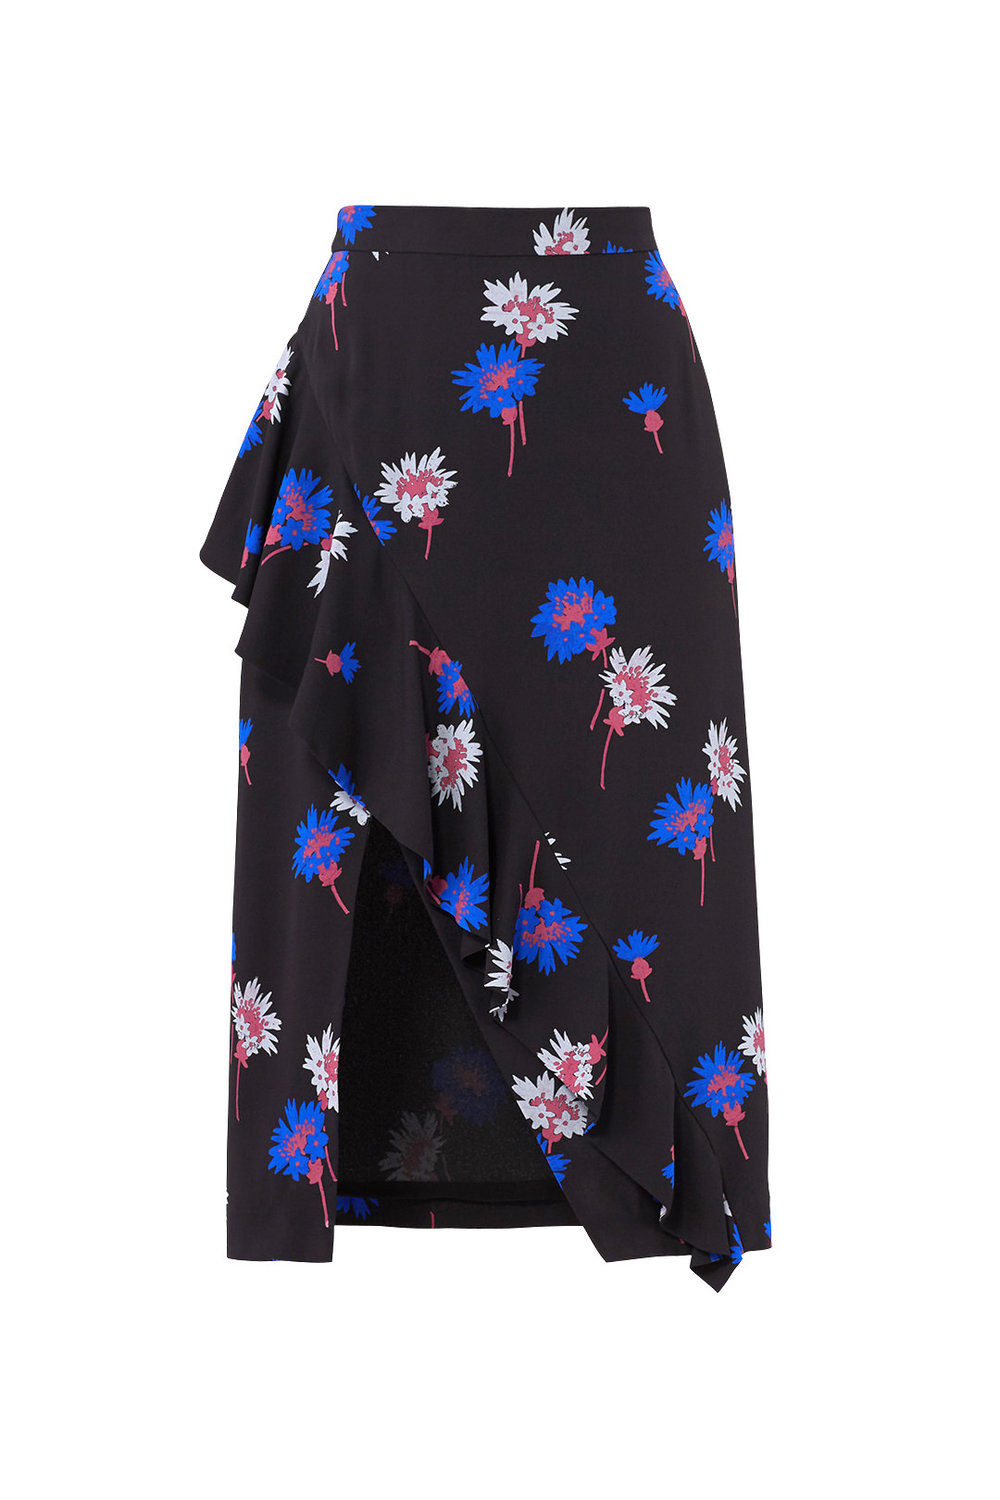 This floral grayson skirt by Tanya Taylor also comes in a dress and is available on Rent the Runway or in stores. GET IT IN YOUR LIFE!